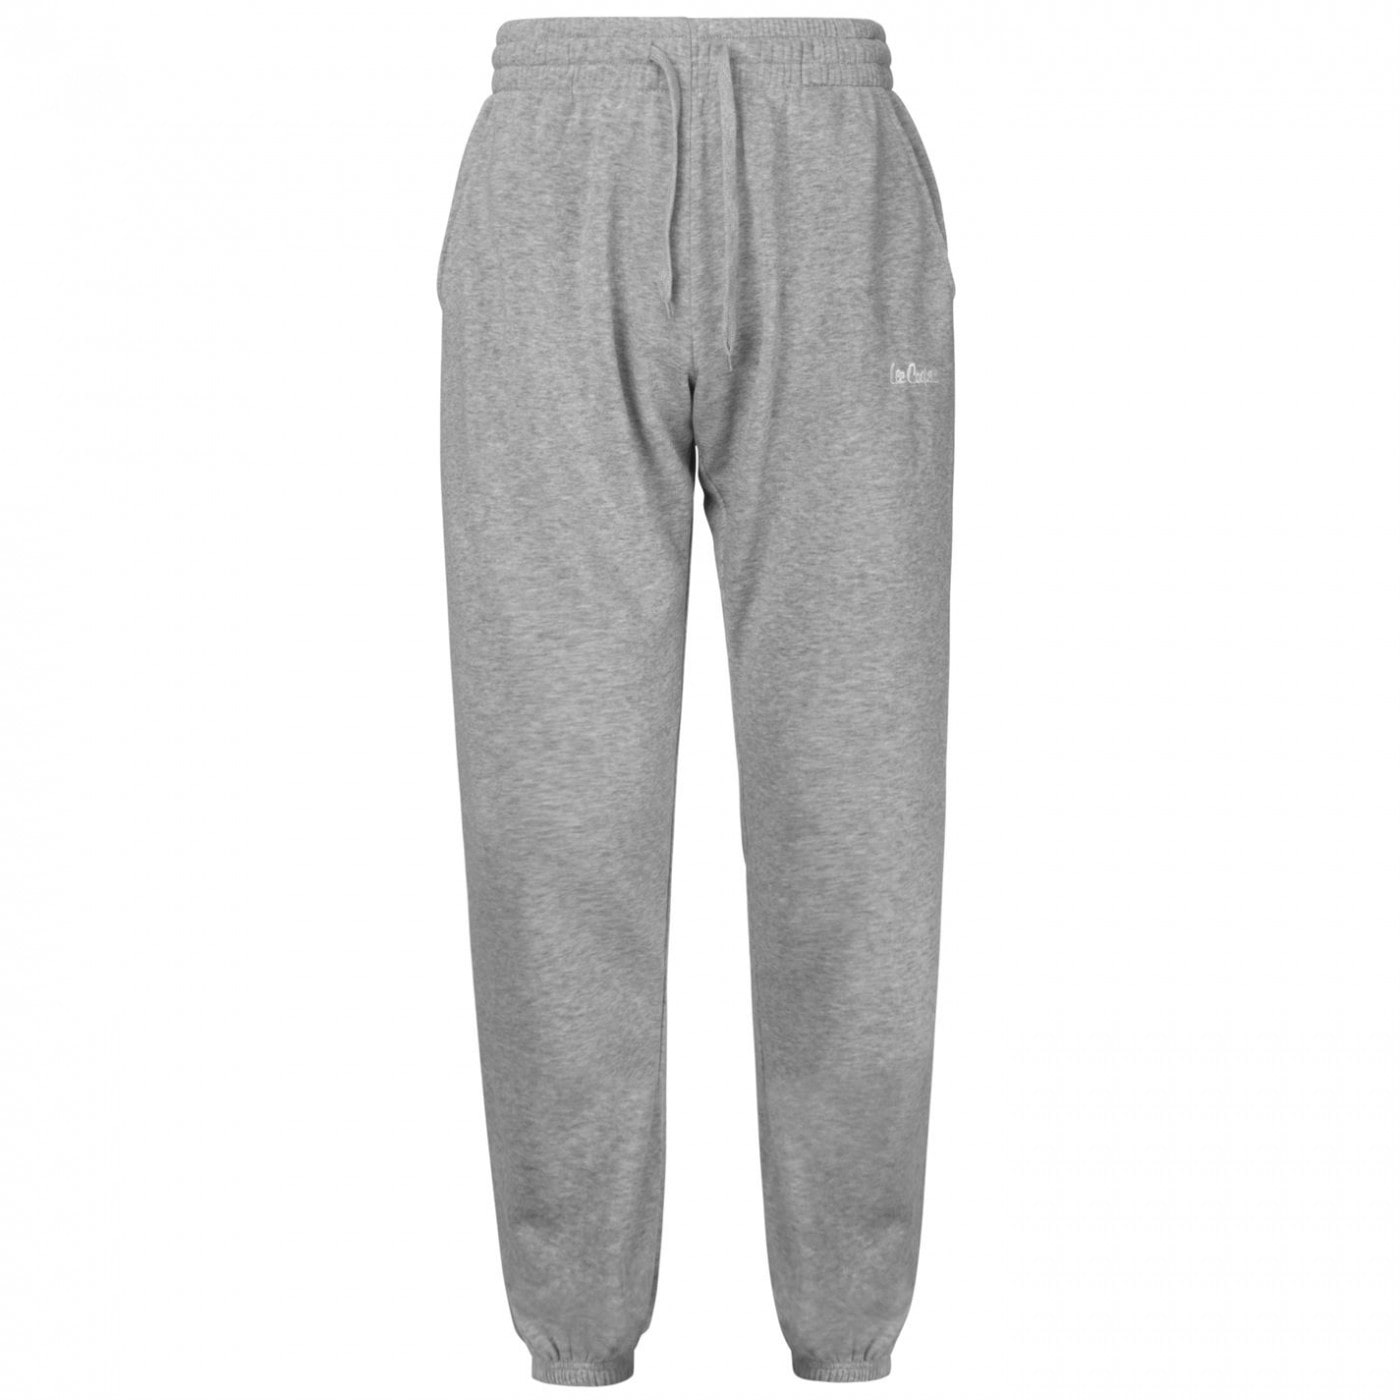 Lee Cooper Fleece Jogging Bottoms Mens